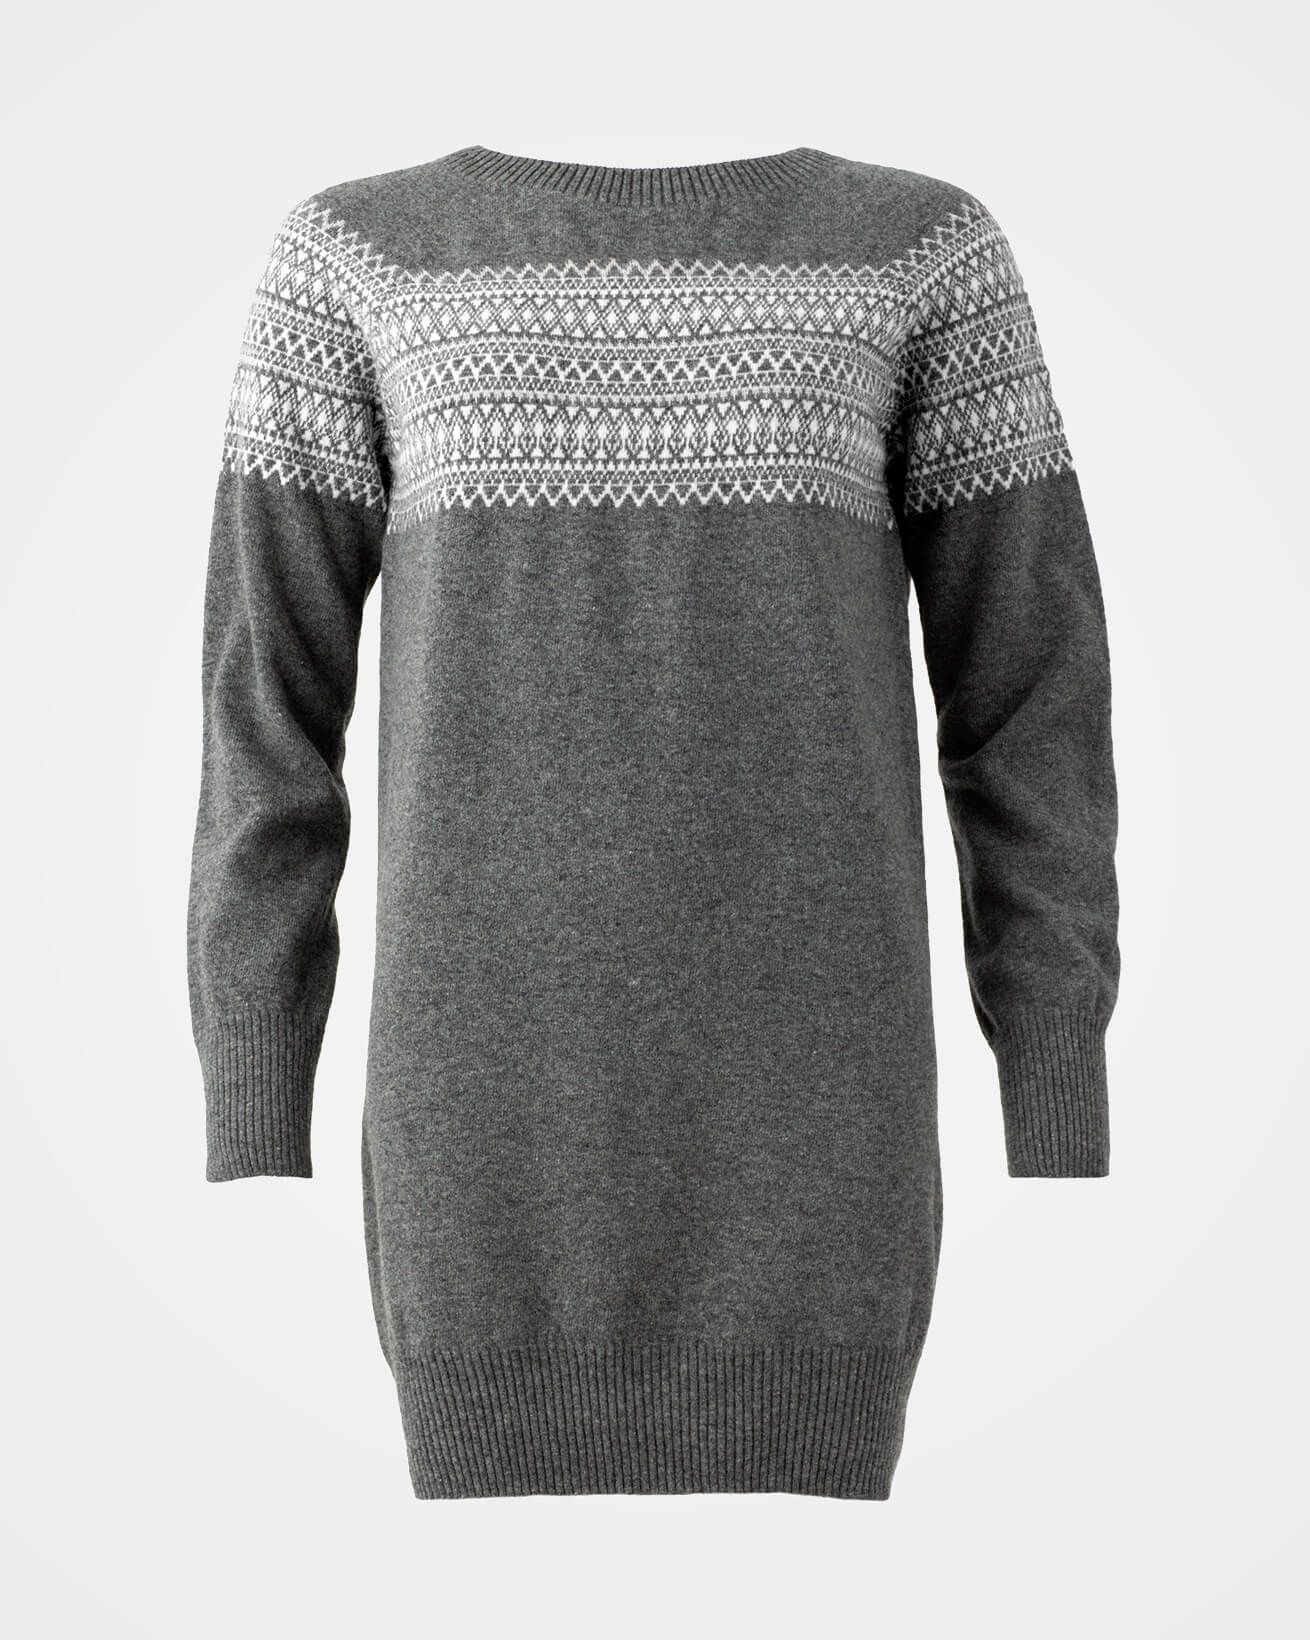 6170_supersoft-slouch-dress_grey-fairisle_front_web.jpg